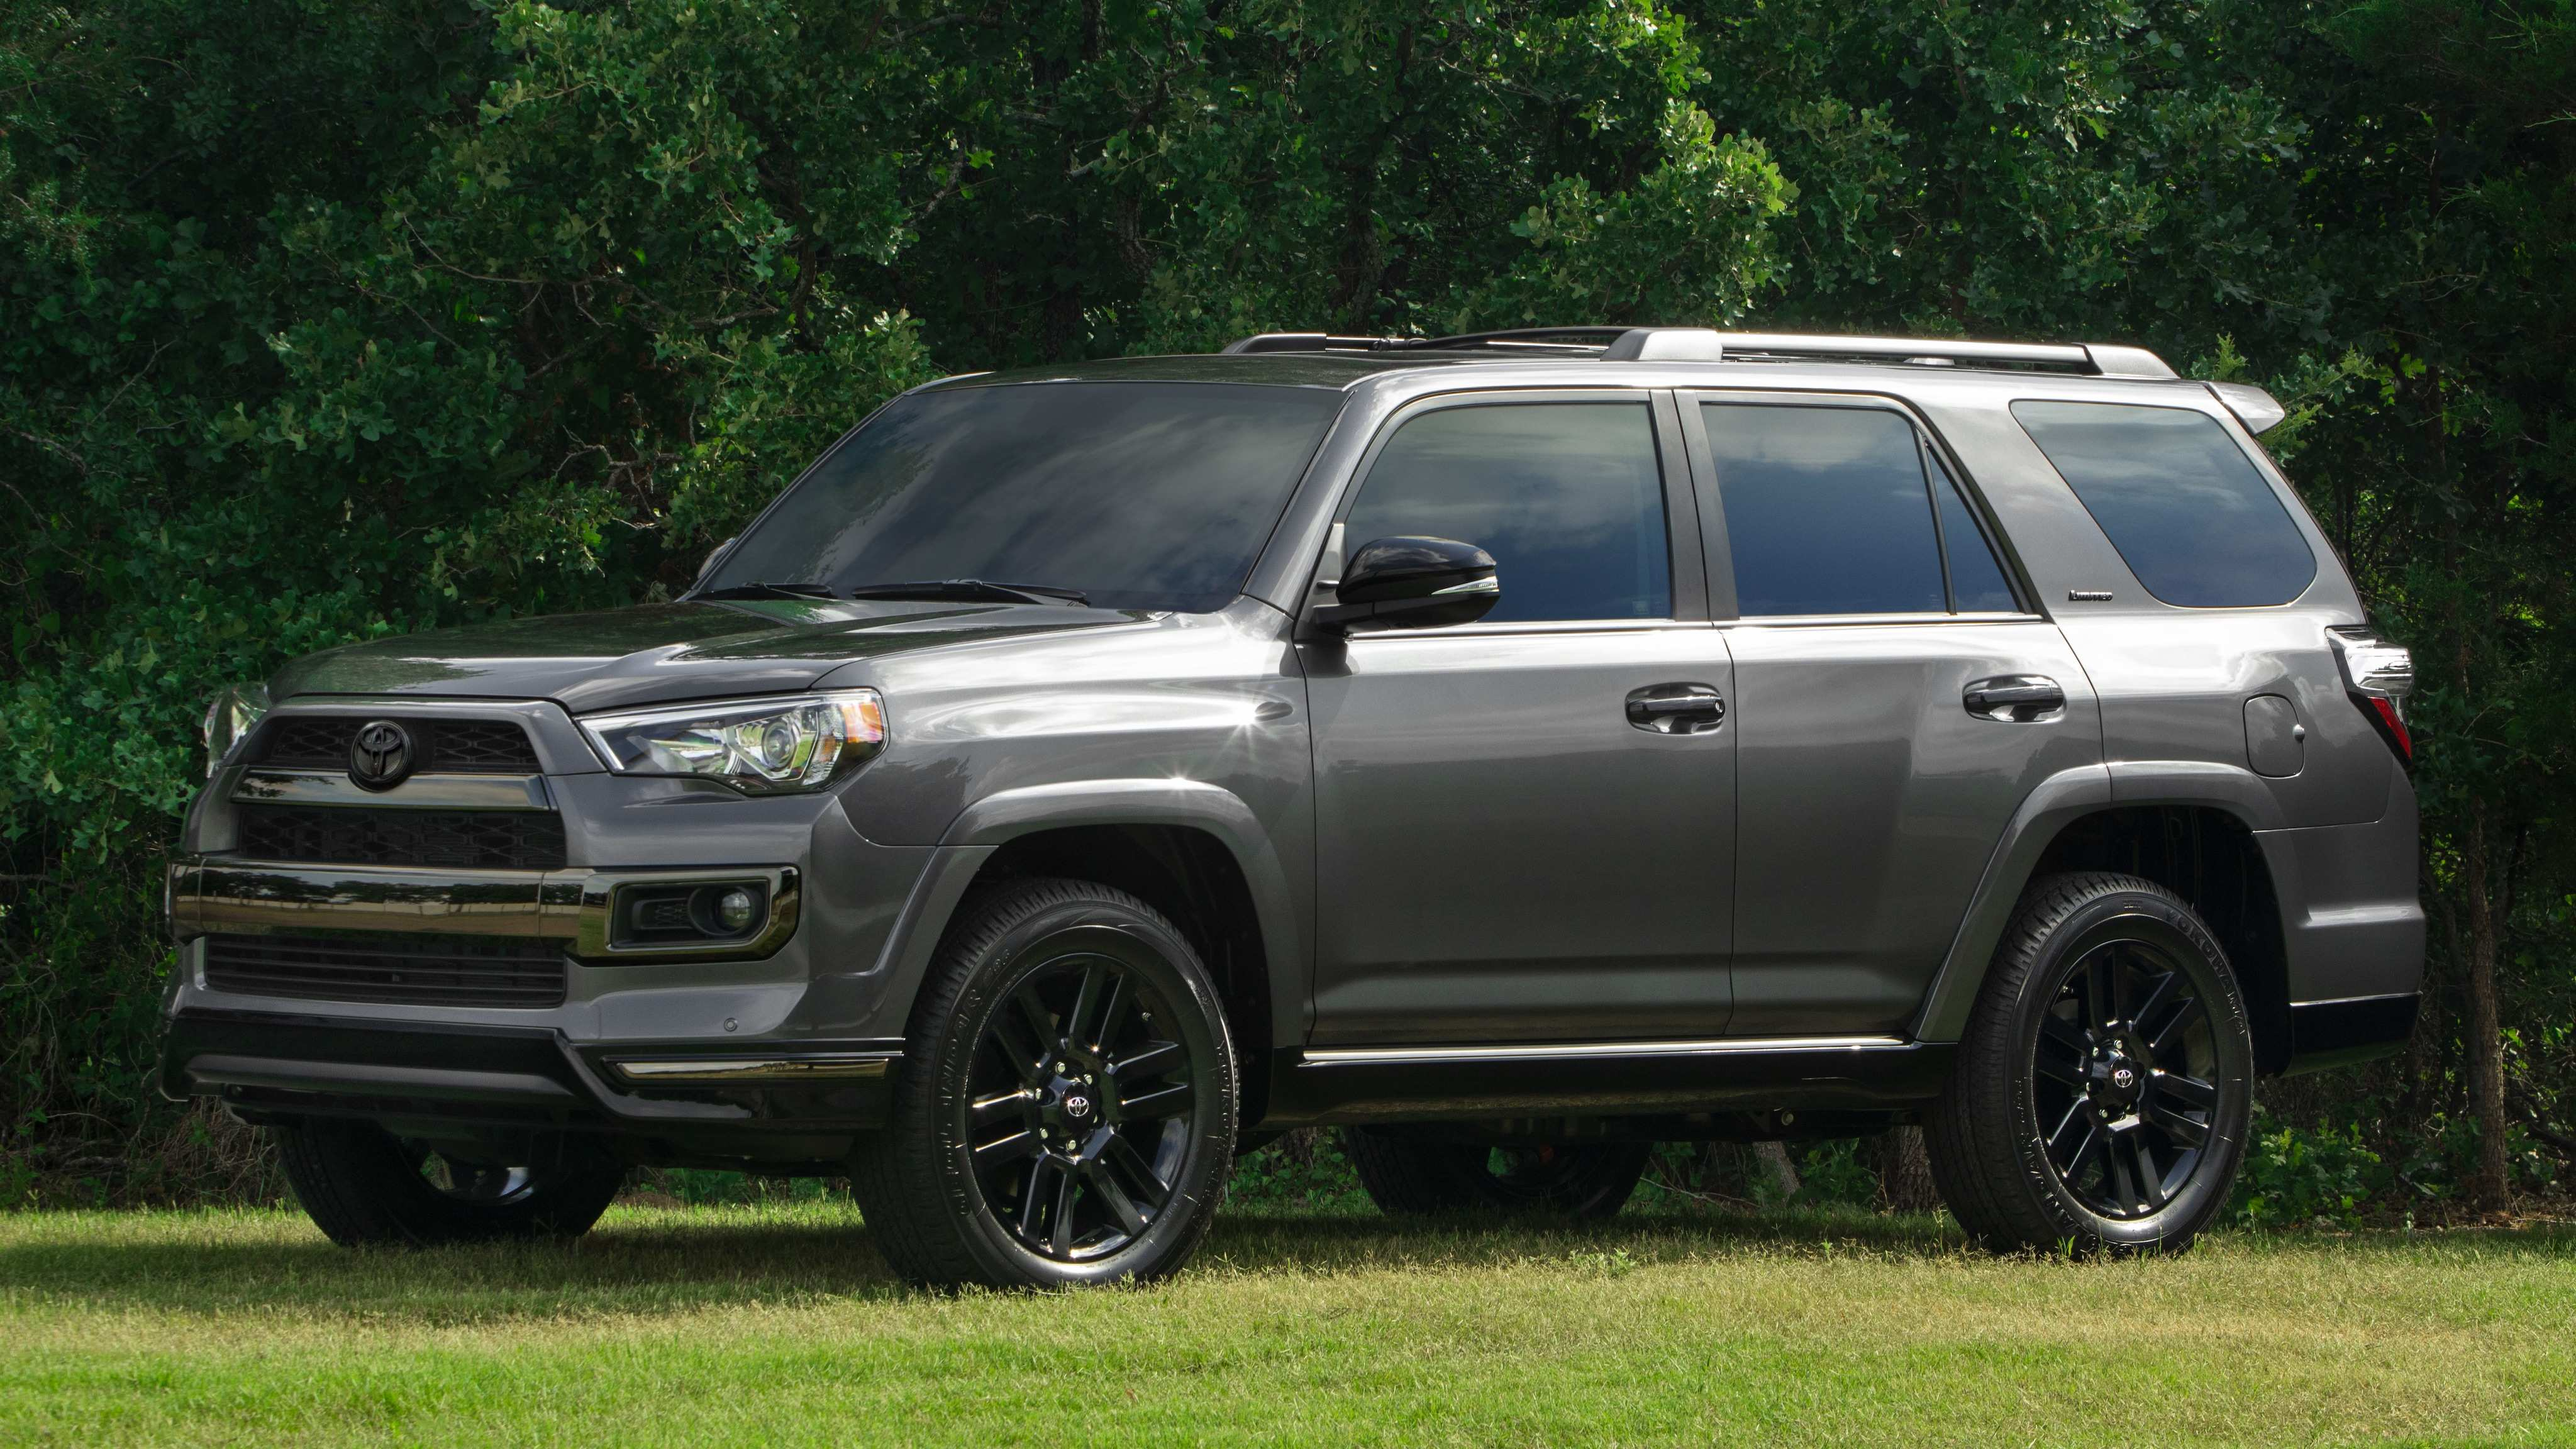 74 All New Toyota 2019 Forerunner Pictures for Toyota 2019 Forerunner